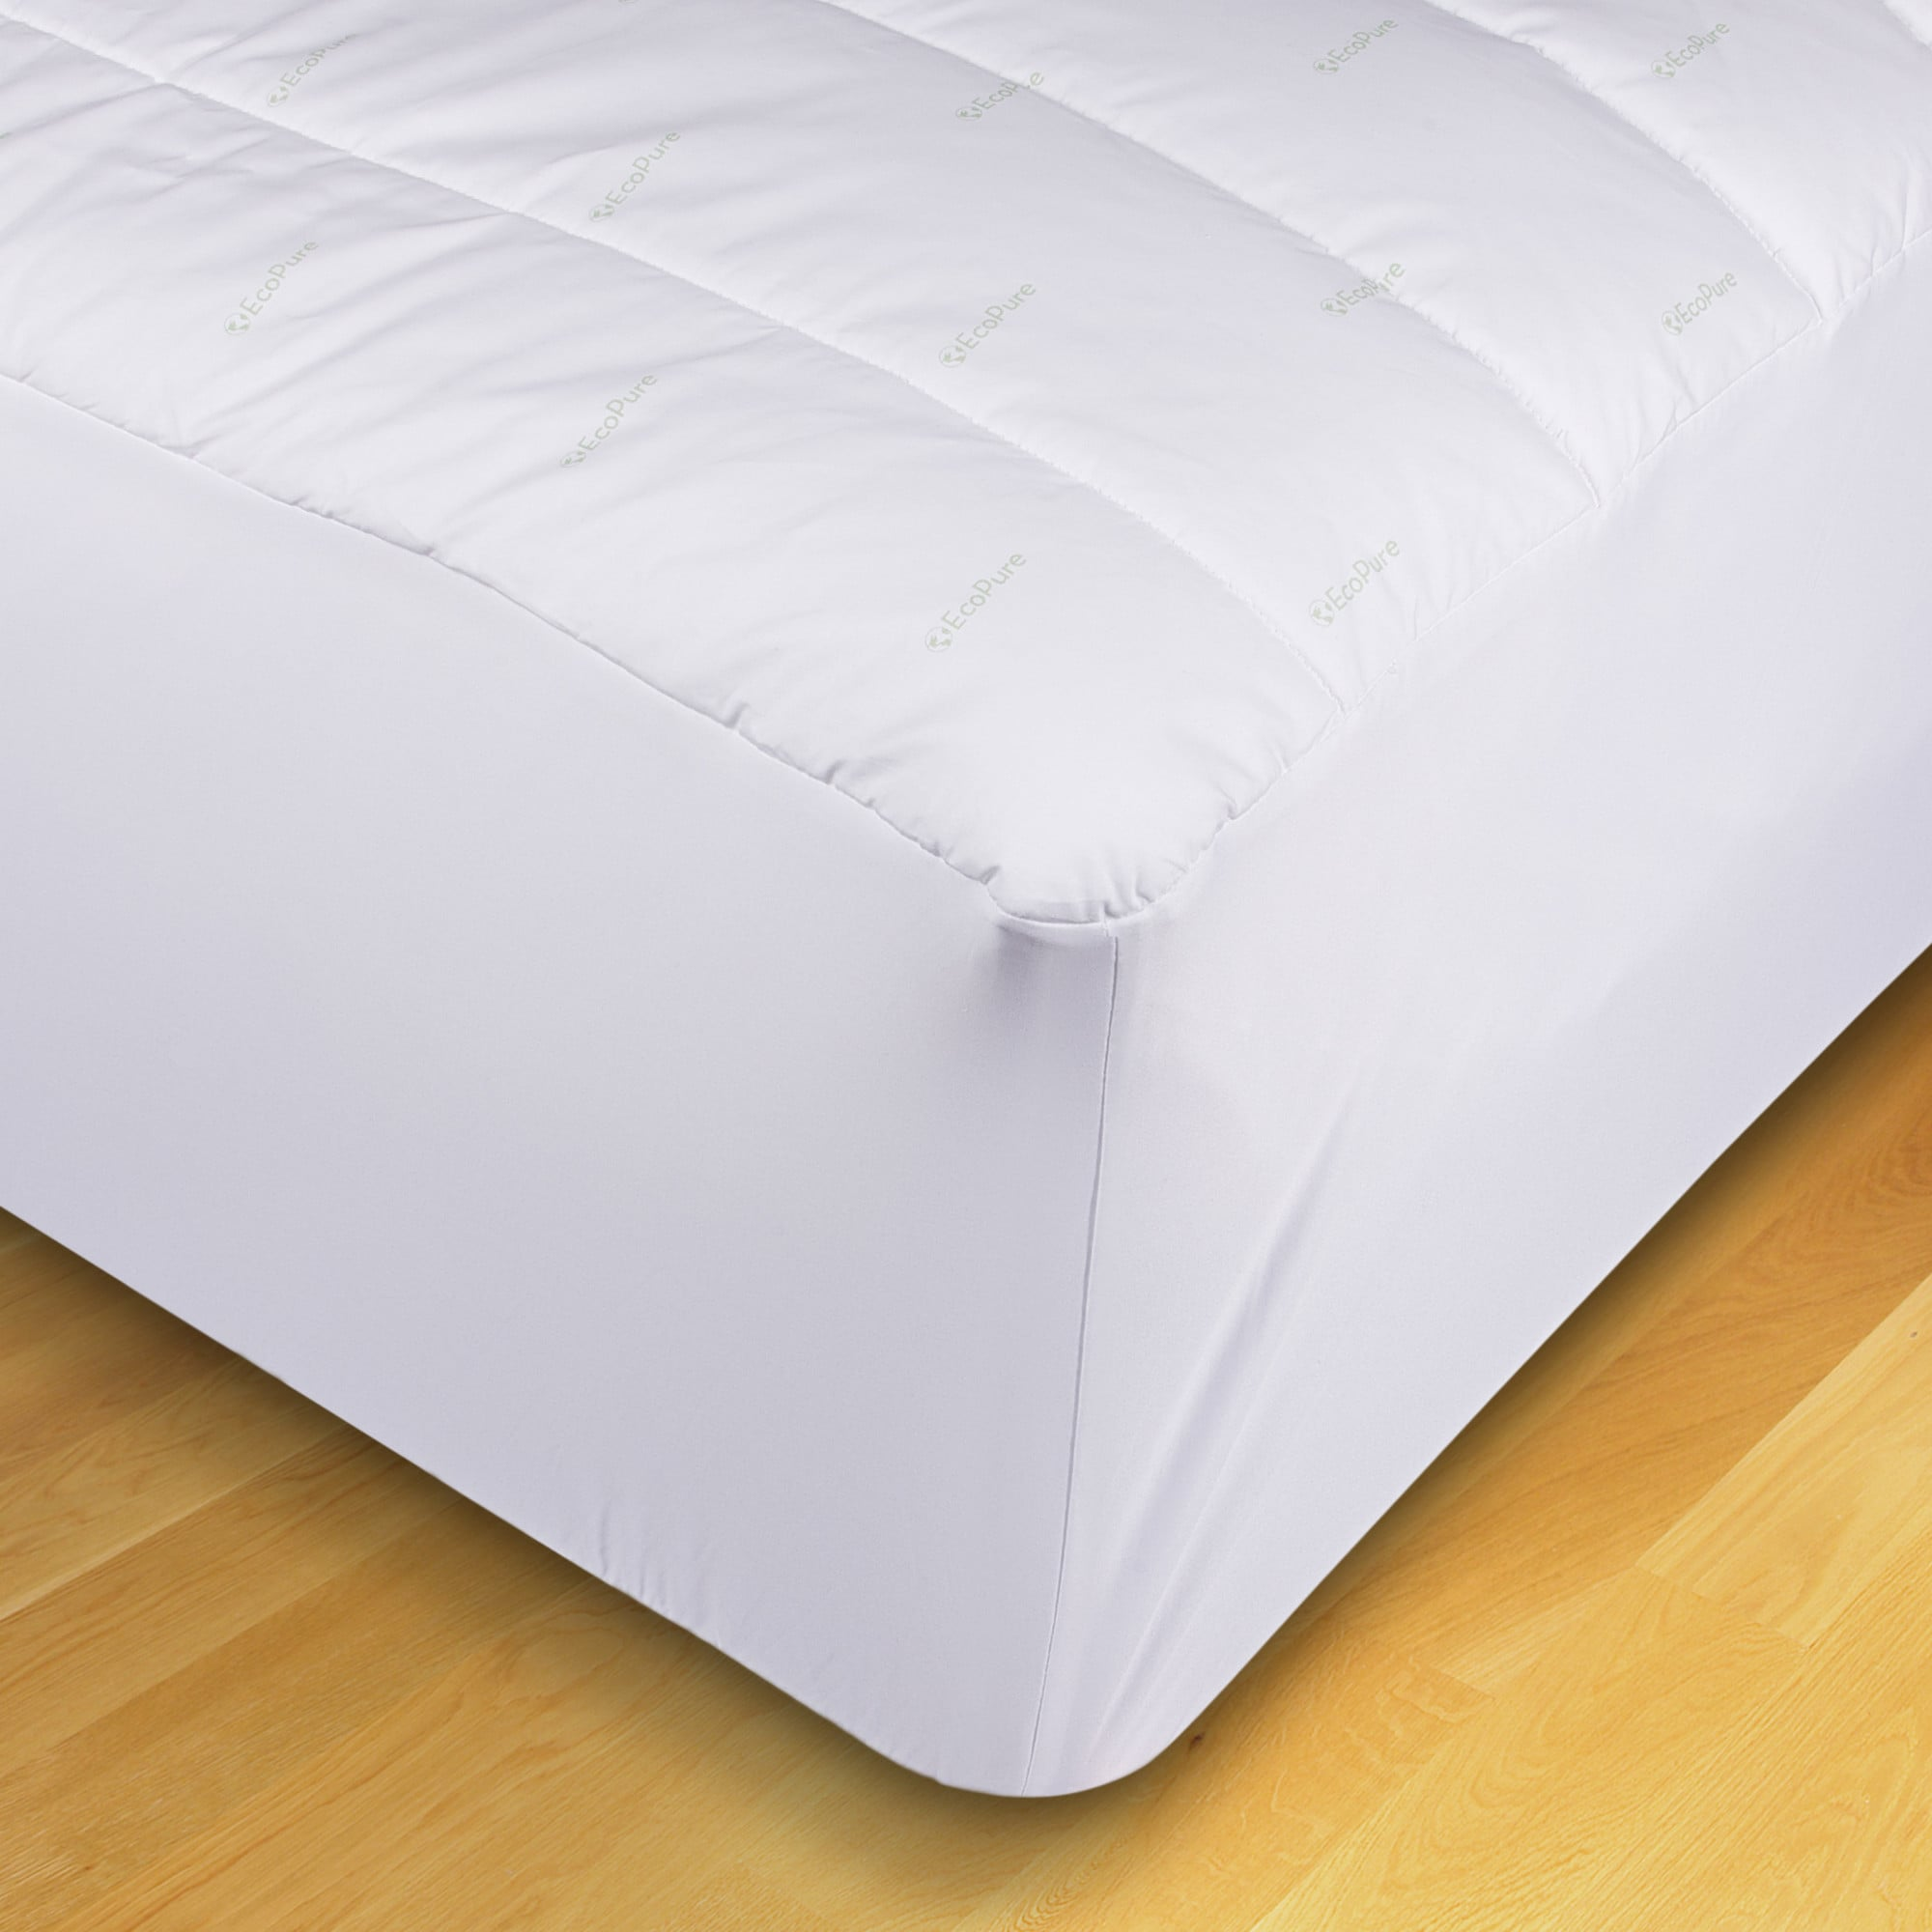 cotton mattress penpucottonmp penpu protector fitted adult incontinence aleva buy waterproof caretex